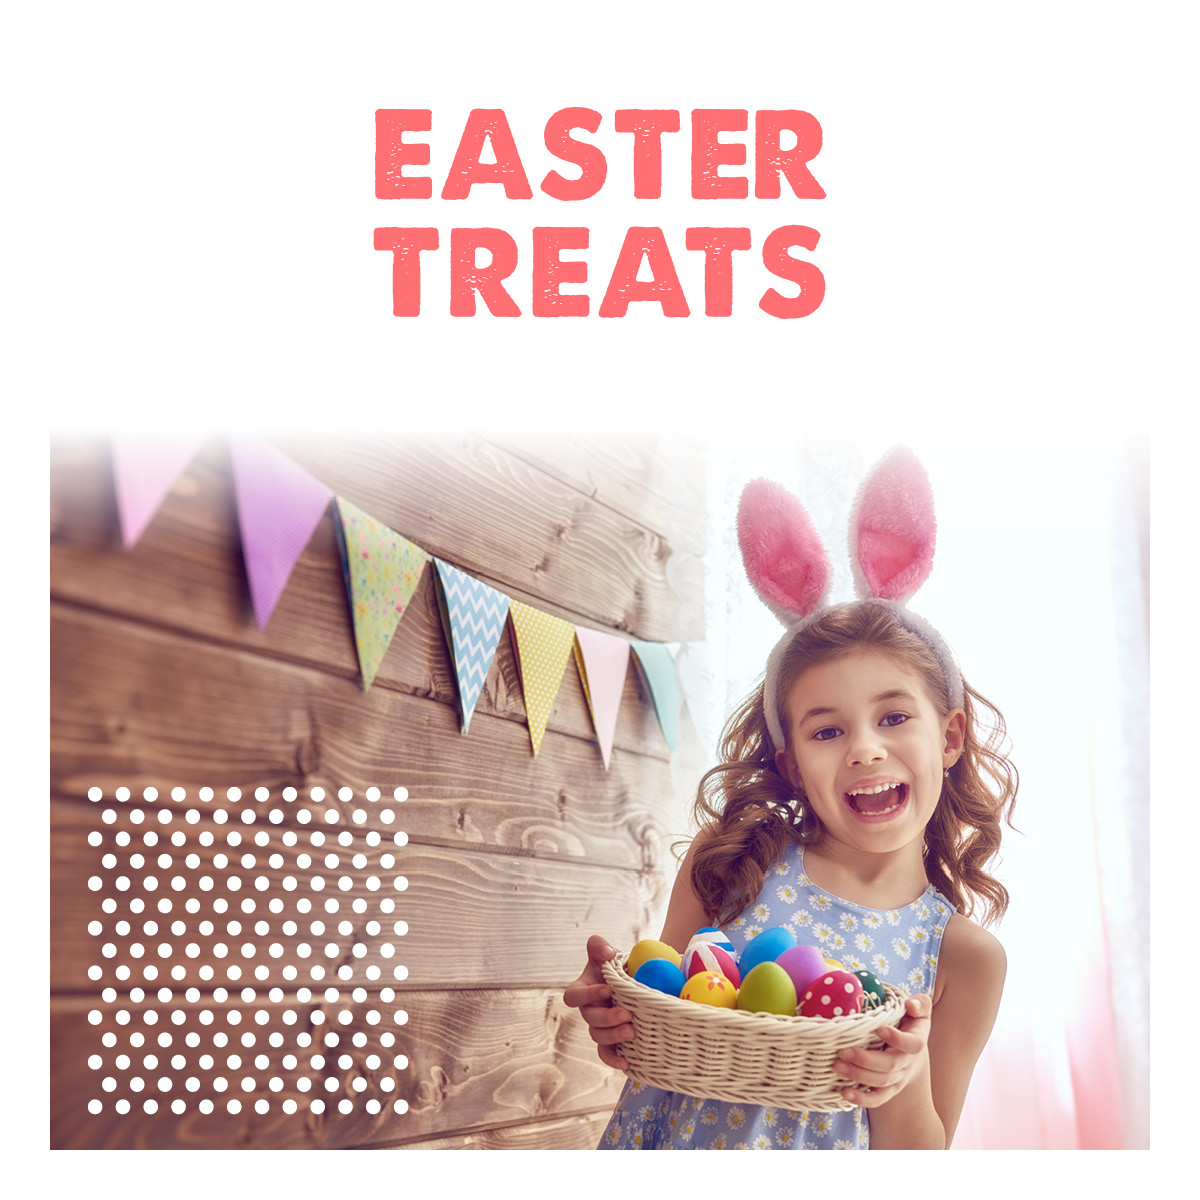 Easter Treats & Gift Ideas for Kids!